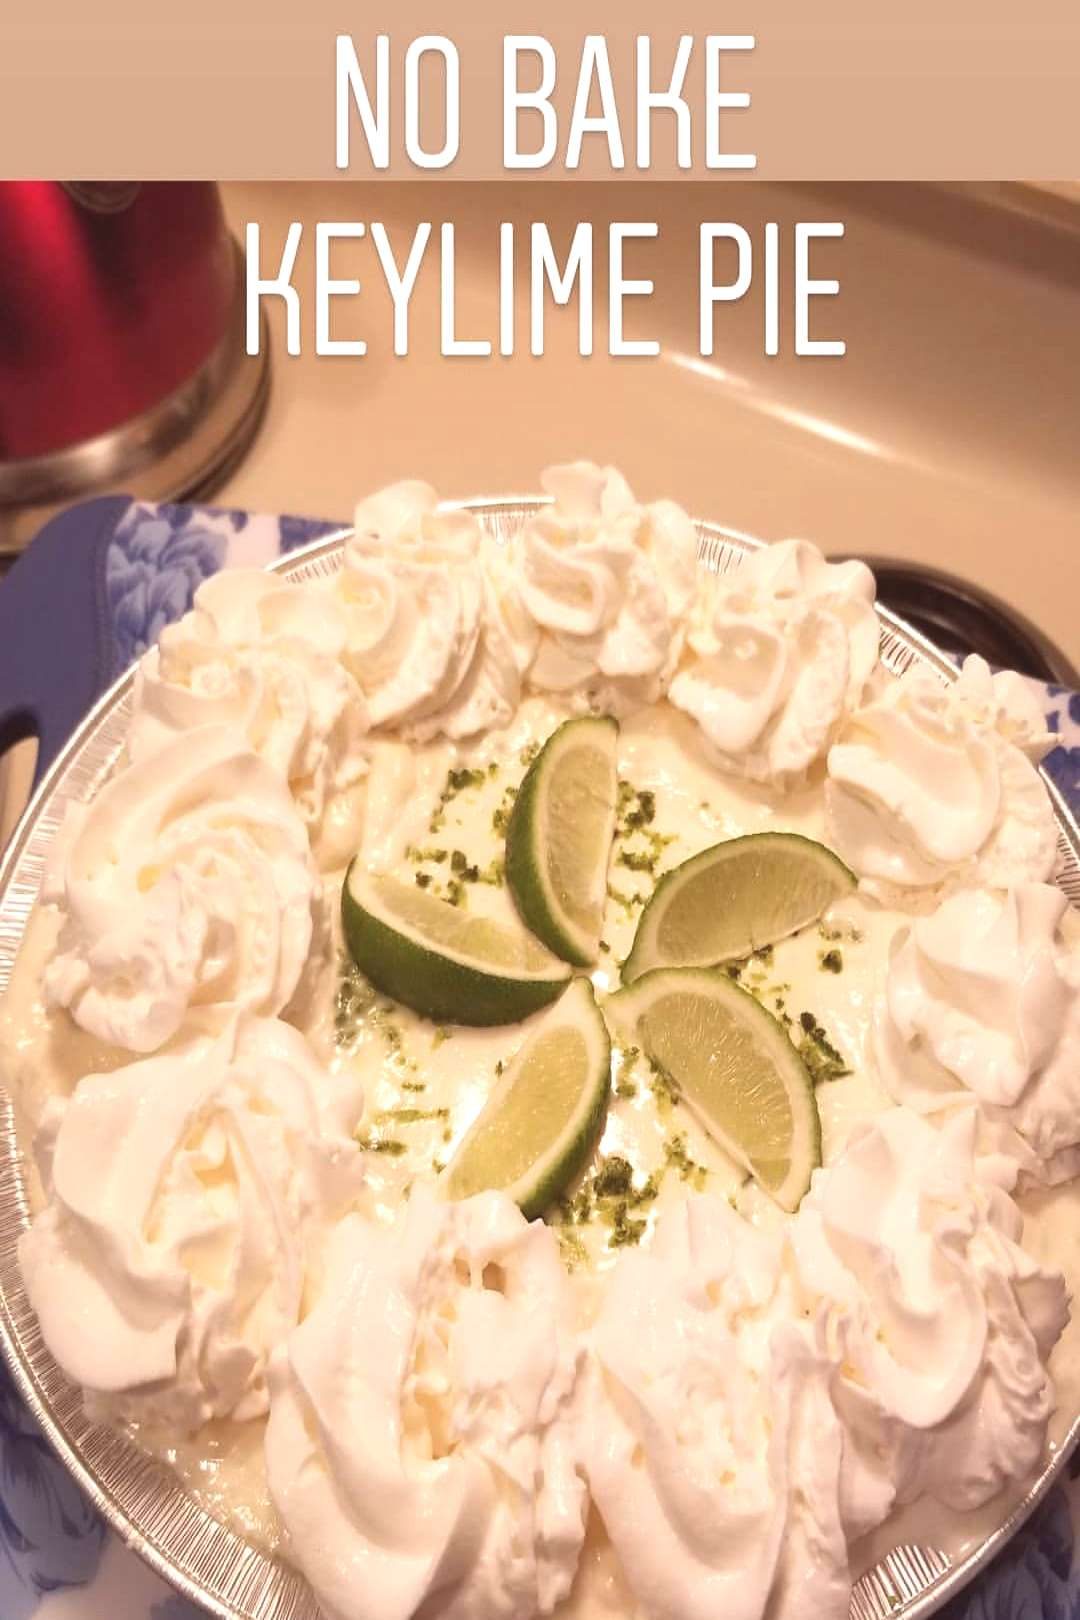 marissa on June 05 2020 food text that says NO BAKE KEYLIME PIE